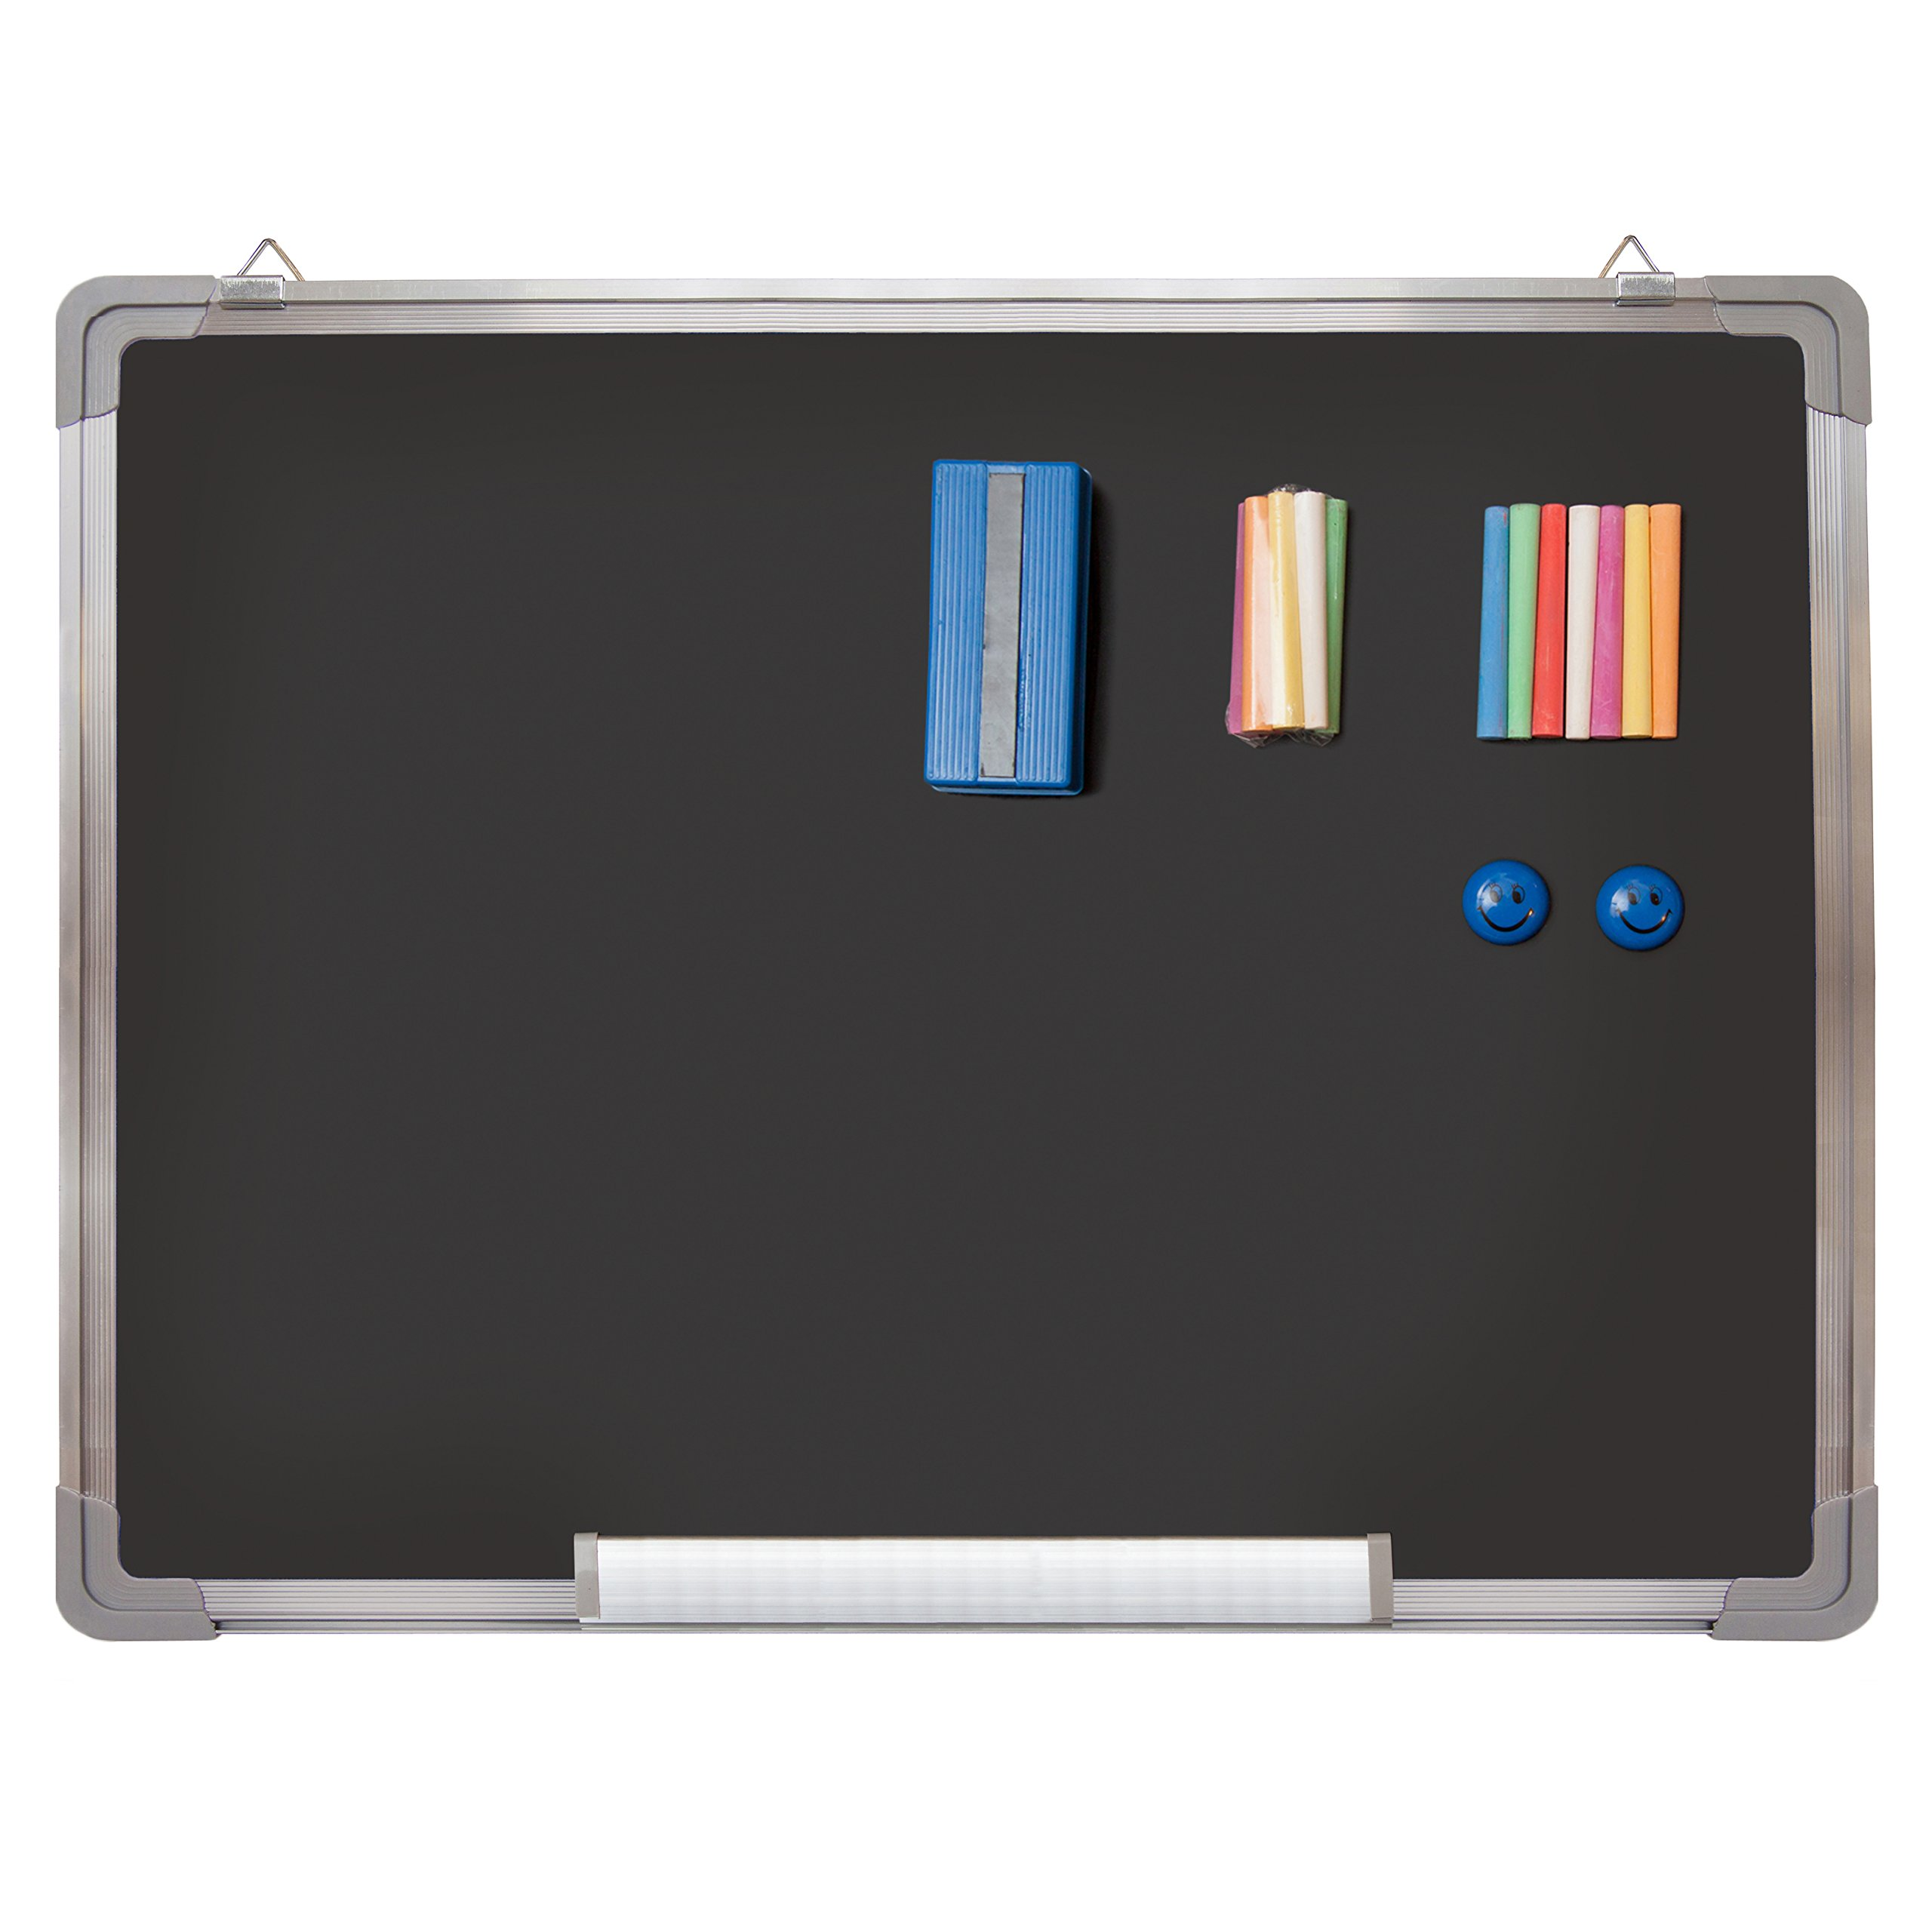 Chalkboard Set - Black Board 24 x 18'' + 1 Magnetic Chalk Eraser, 14 Chalk Sticks (7 Colors) and 2 Magnets - Small Message Blackboard with Sturdy Frame for Home Office Class School (24x18'' Landscape)